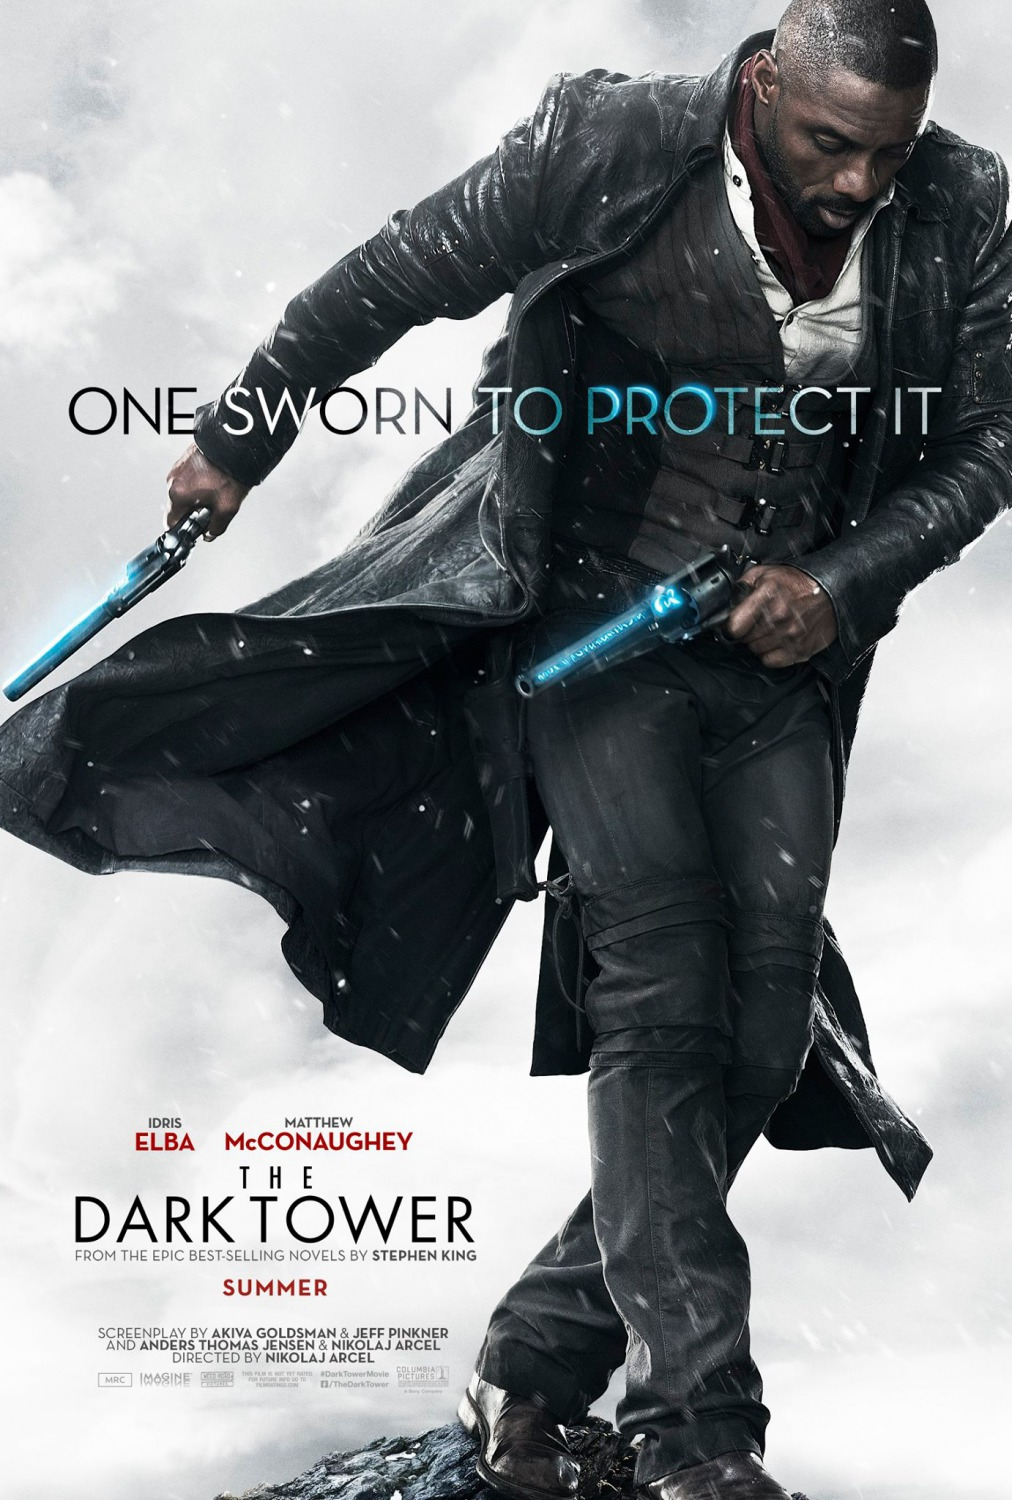 97f1ce8590c1e Idris Elba Matthew McConaughey Stephen King s The Dark Tower Trailer